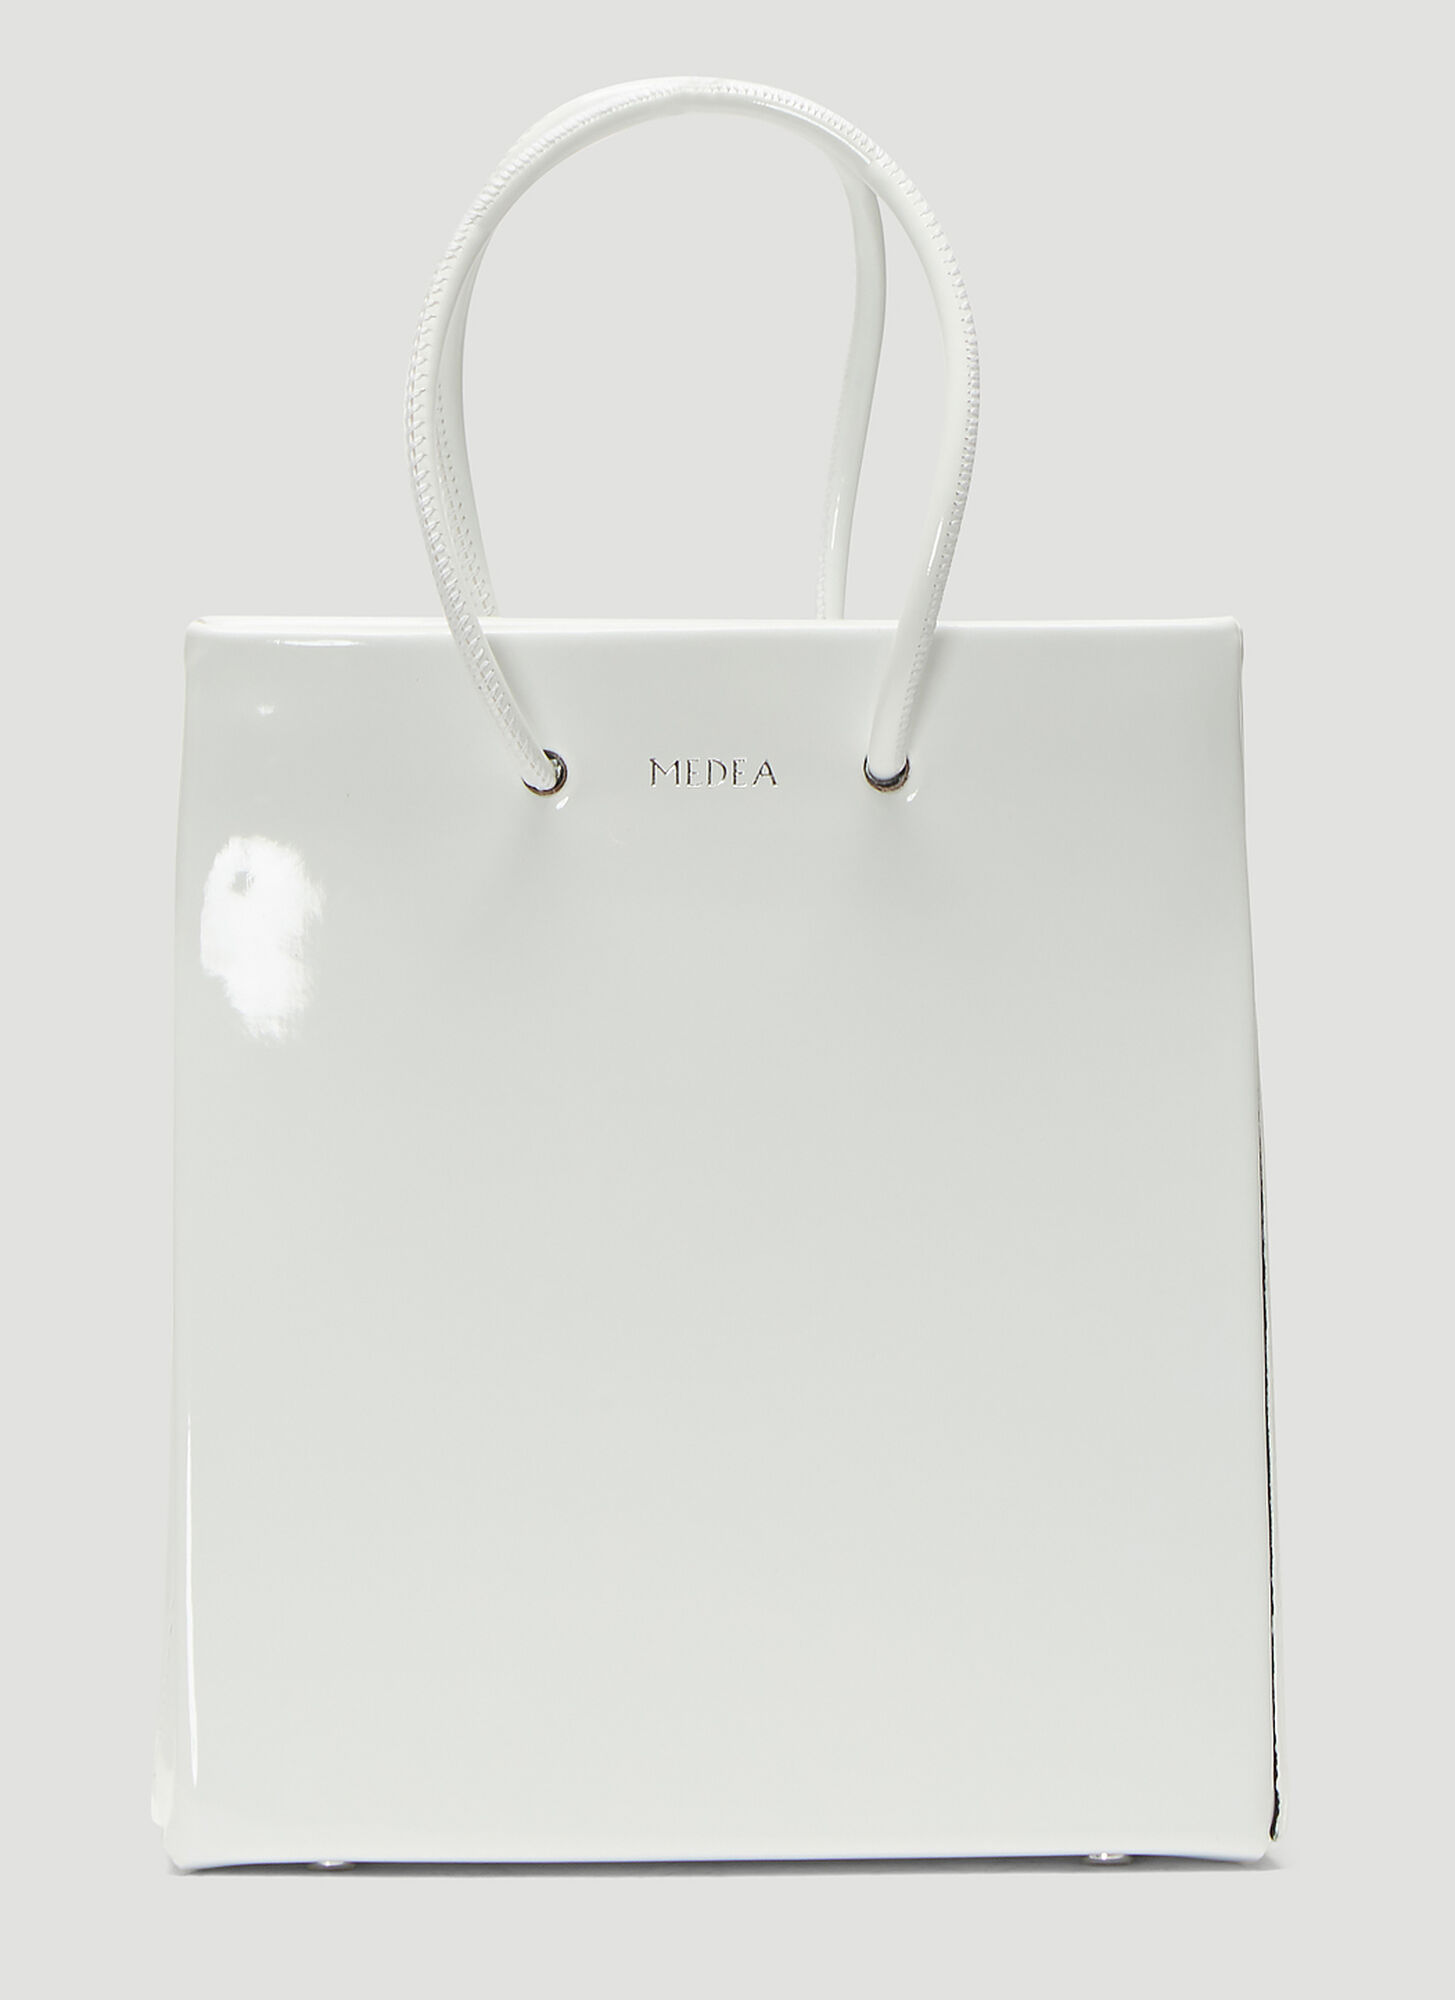 Photo of Medea Short Vinile Shopper Bag in White - Medea Handbags